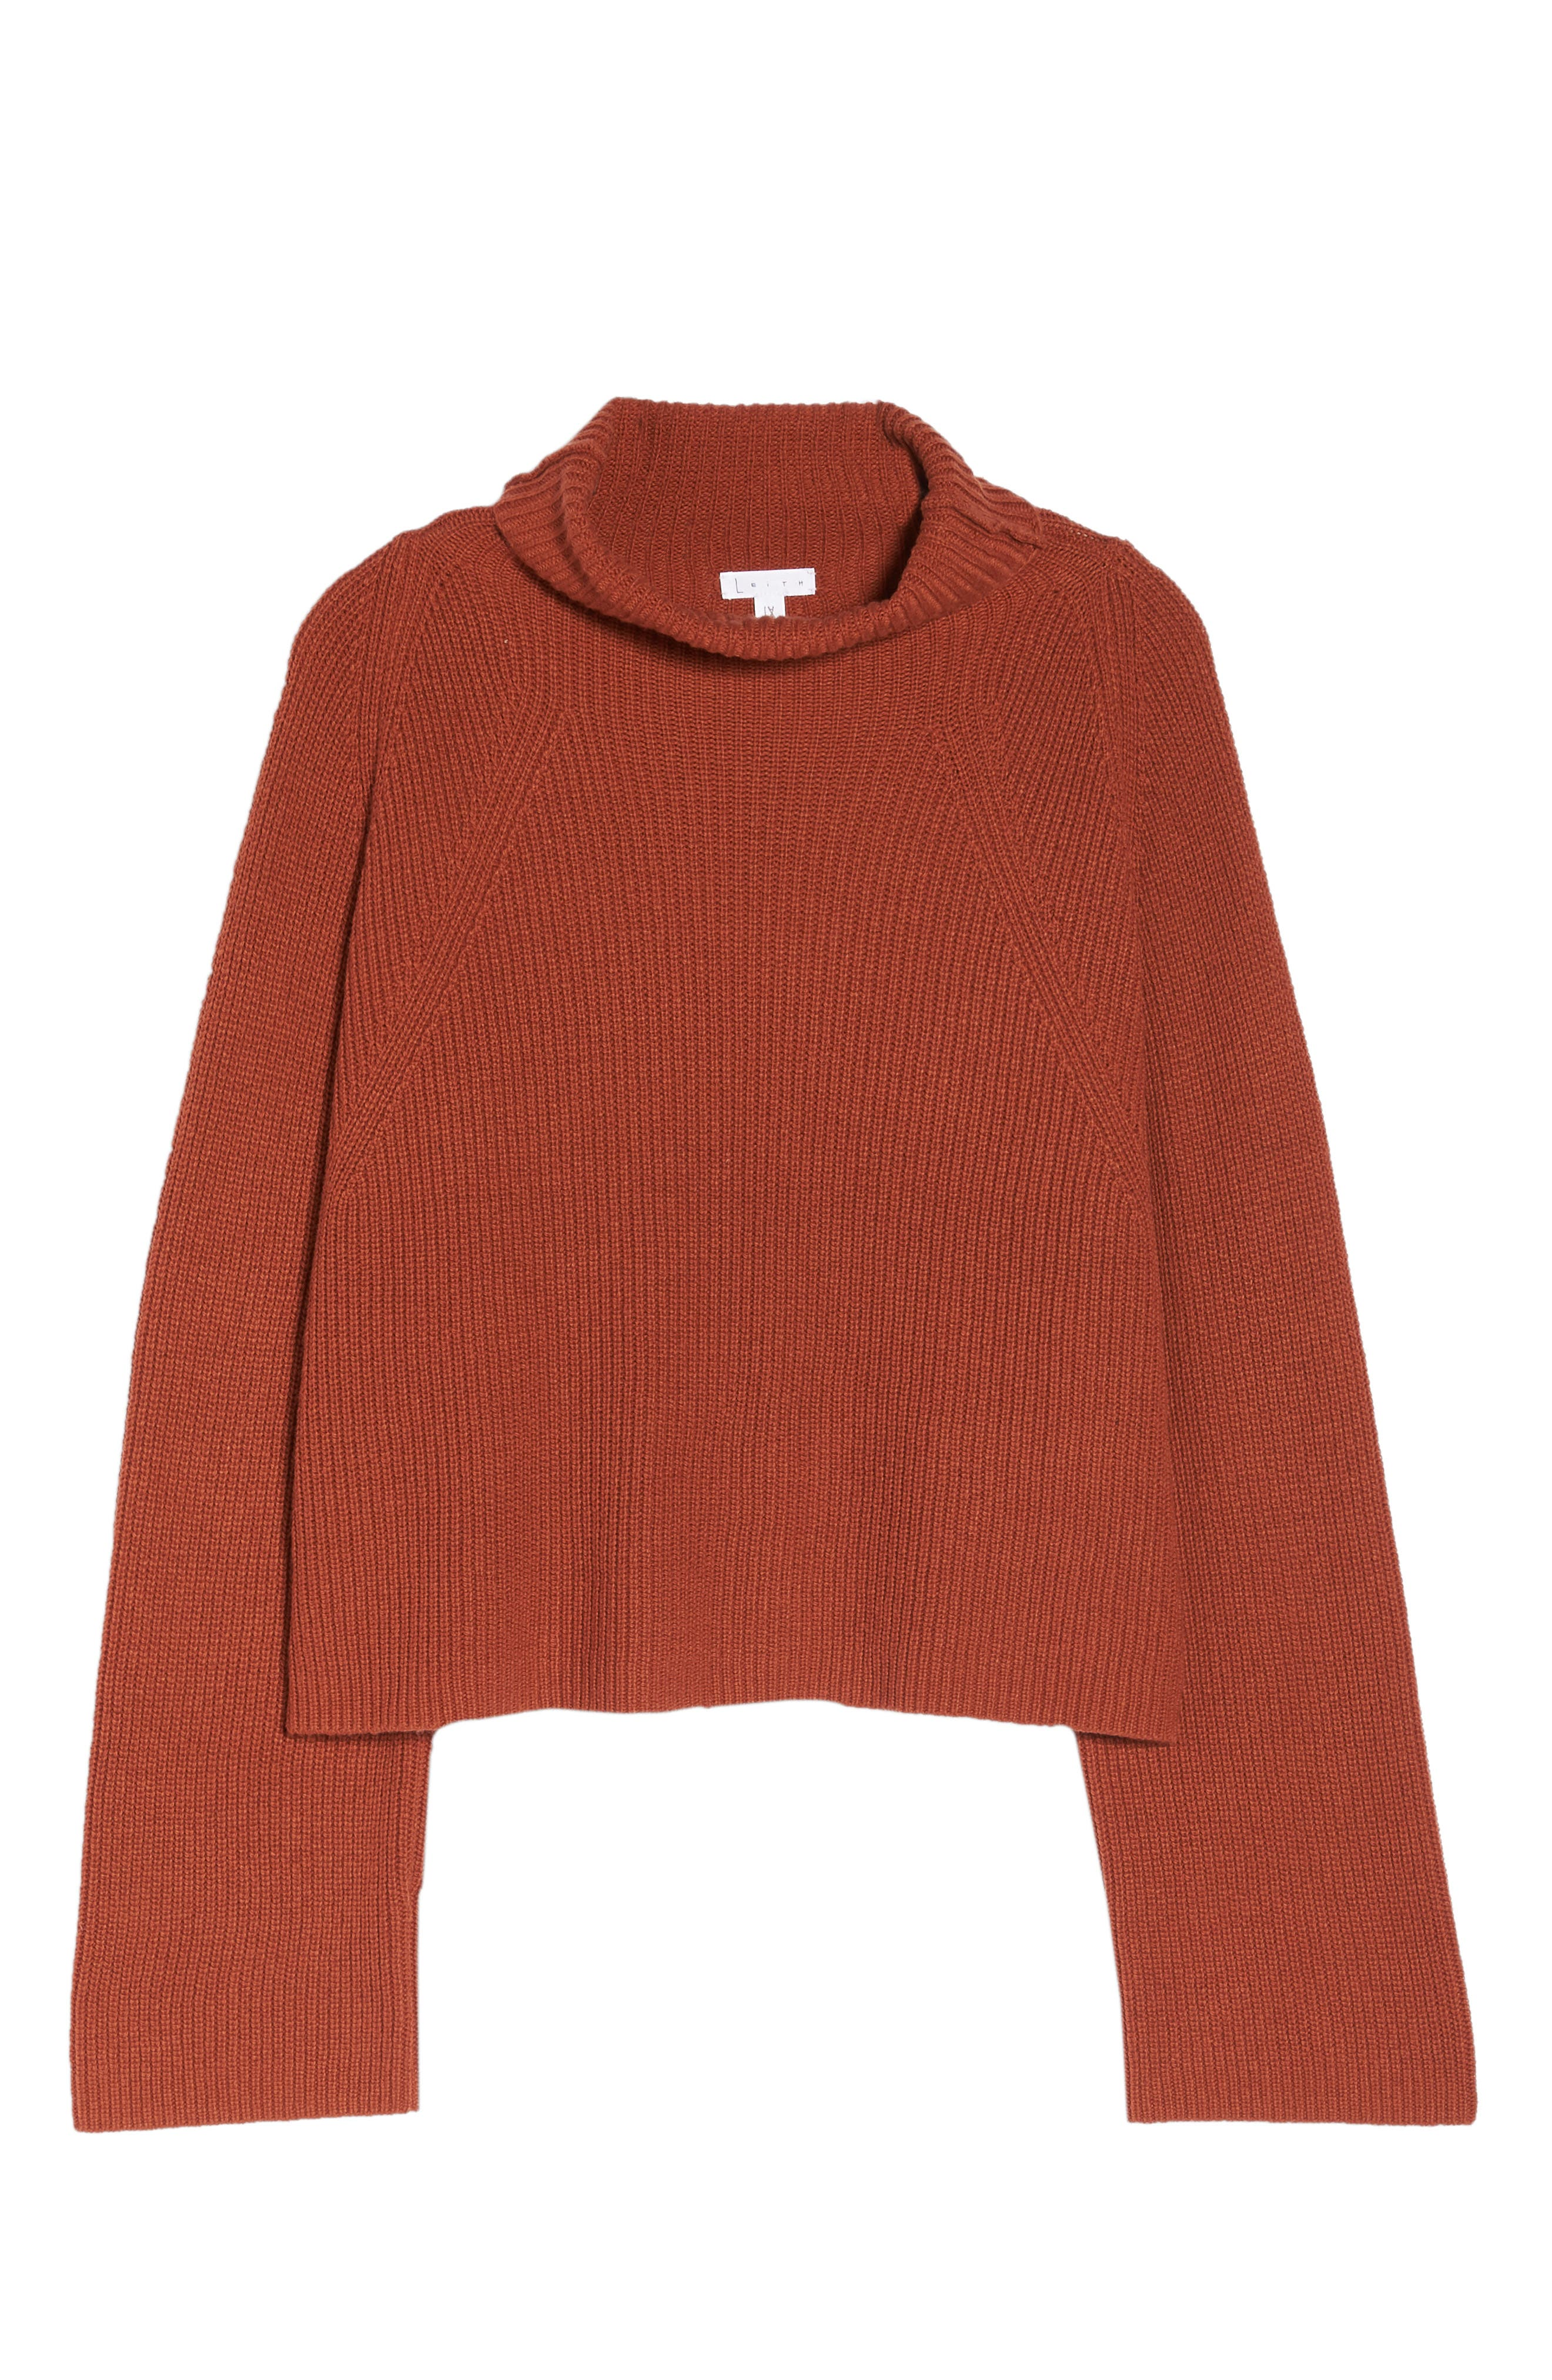 Transfer Stitch Turtleneck Sweater,                             Alternate thumbnail 11, color,                             BROWN SPICE